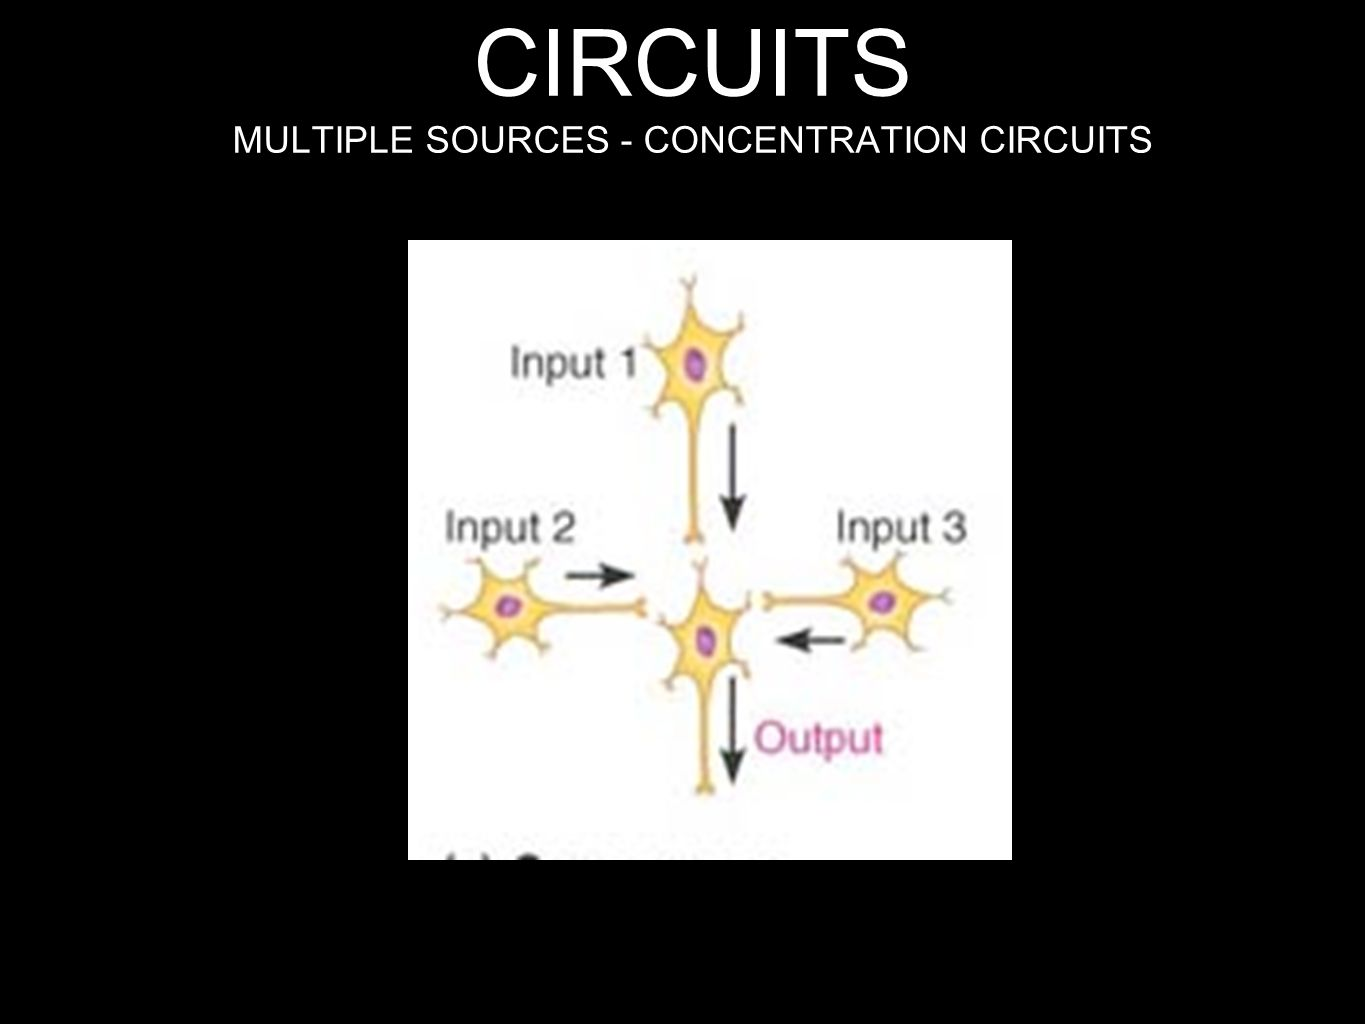 CONVERGENT CIRCUITS MULTIPLE SOURCES - CONCENTRATION CIRCUITS